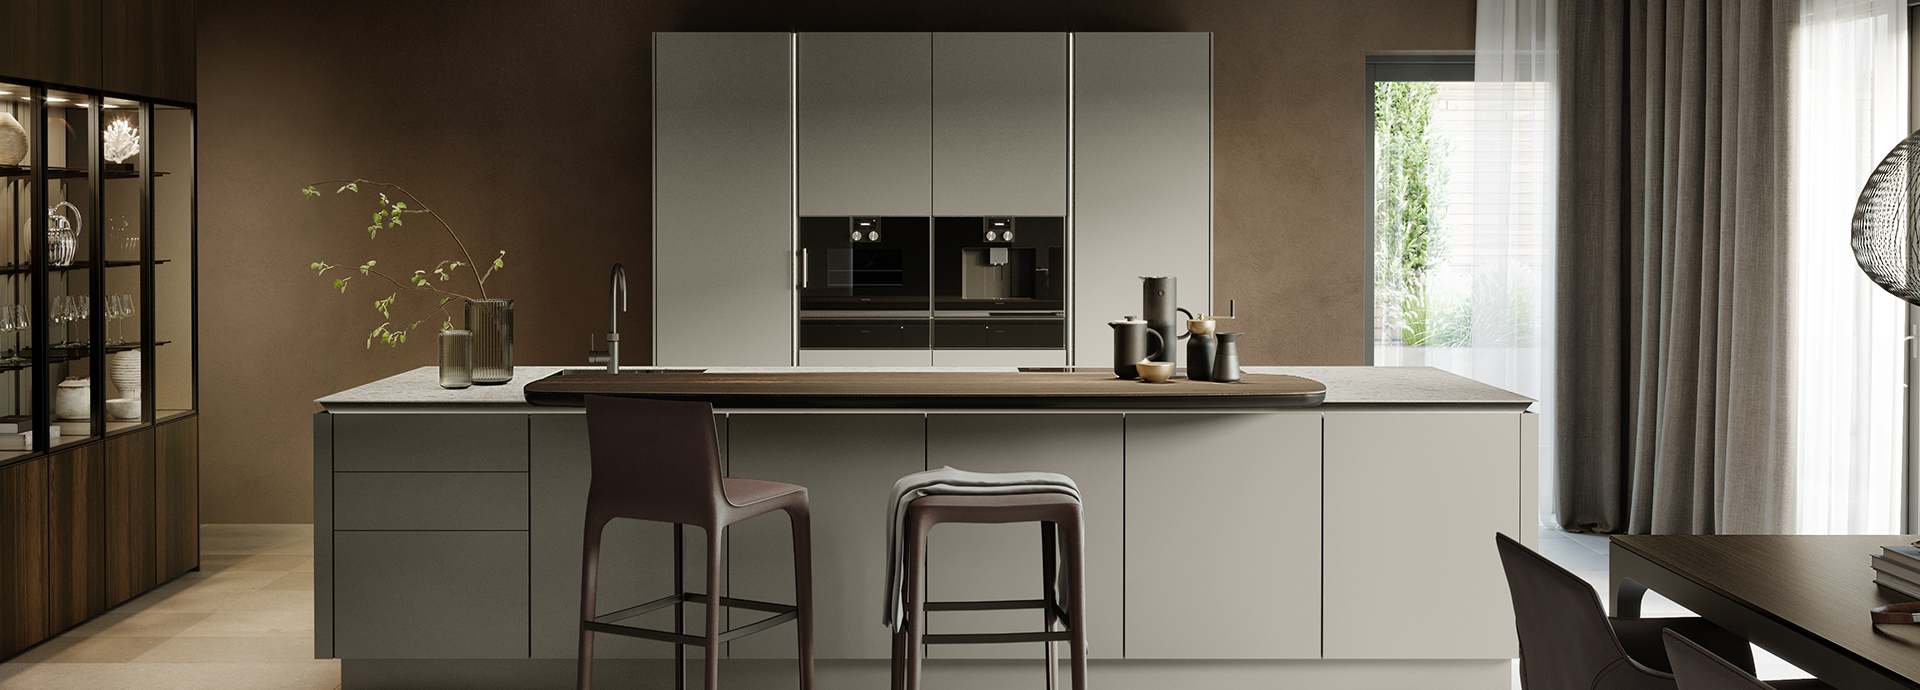 product-header_siematic-slx_pure_4.jpg